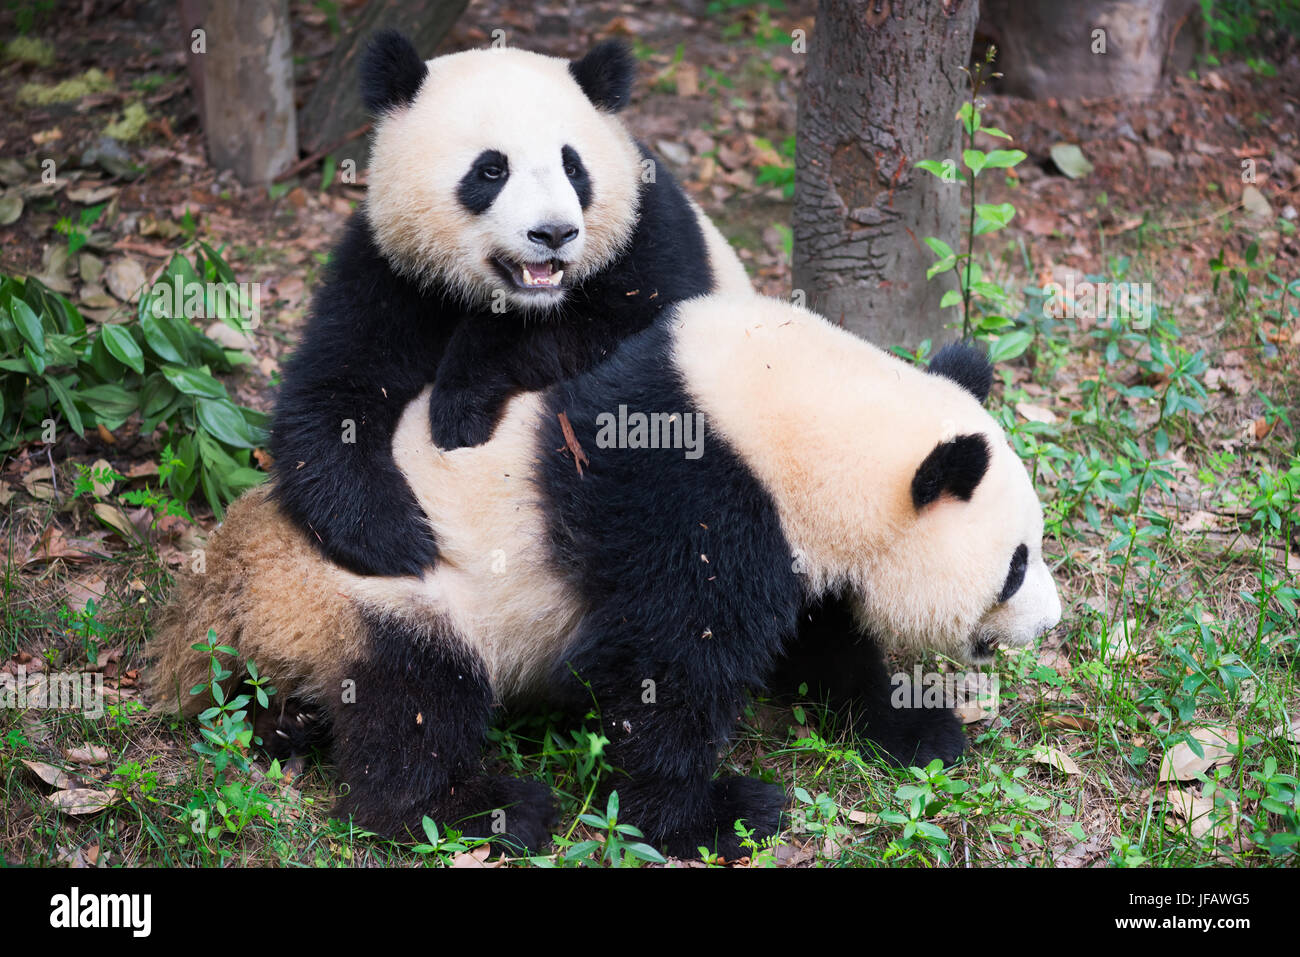 Two giant panda cubs playing together, Chengdu, China - Stock Image